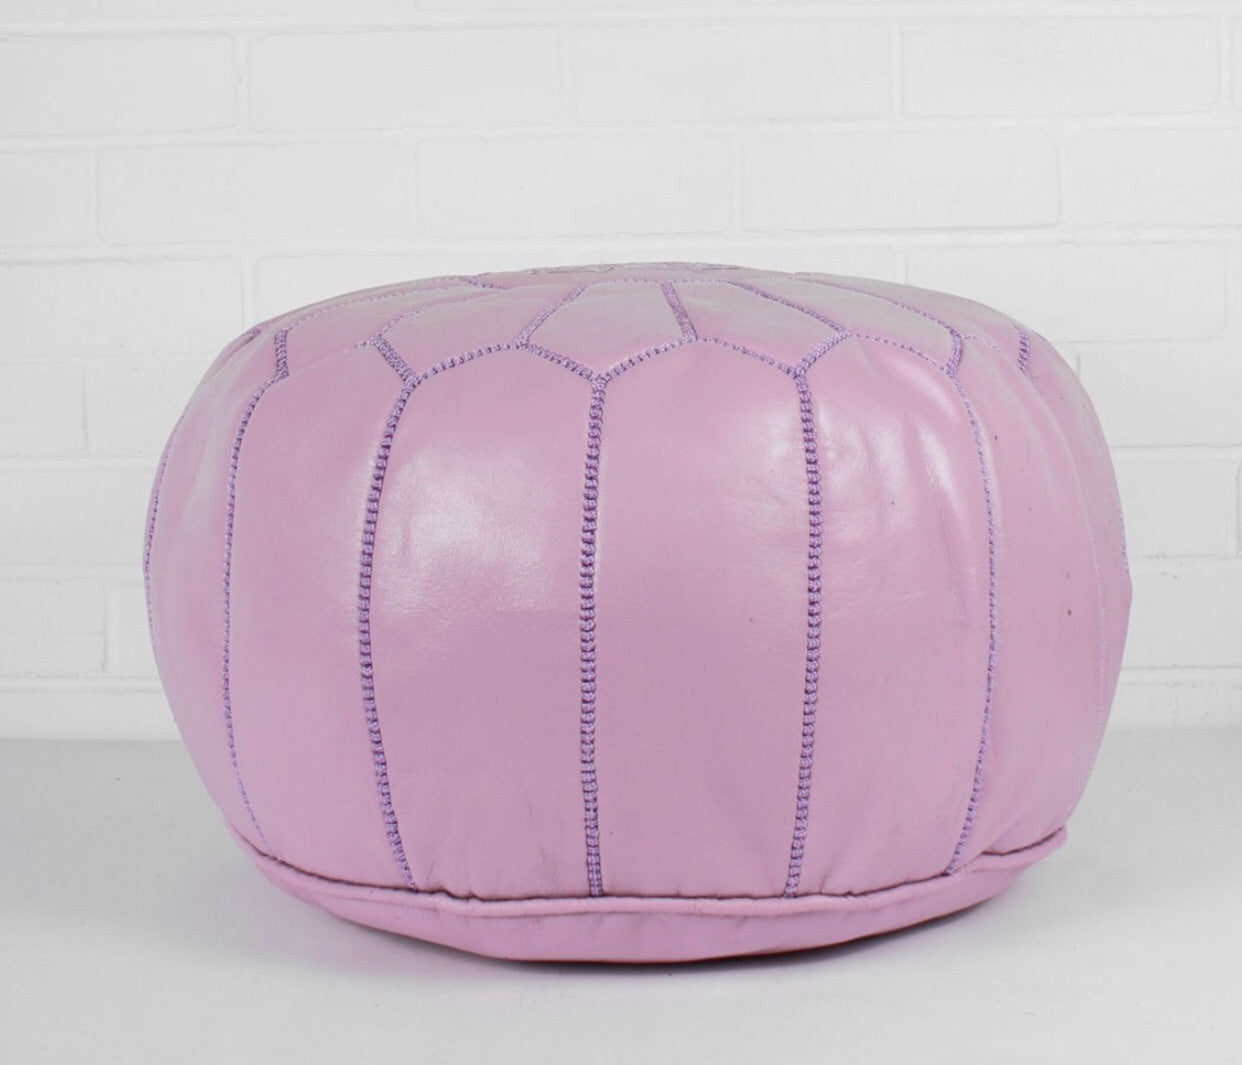 Astounding Premium Moroccan Pouf Ottoman Footstool Genuine Leather Soft Lilac Uwap Interior Chair Design Uwaporg